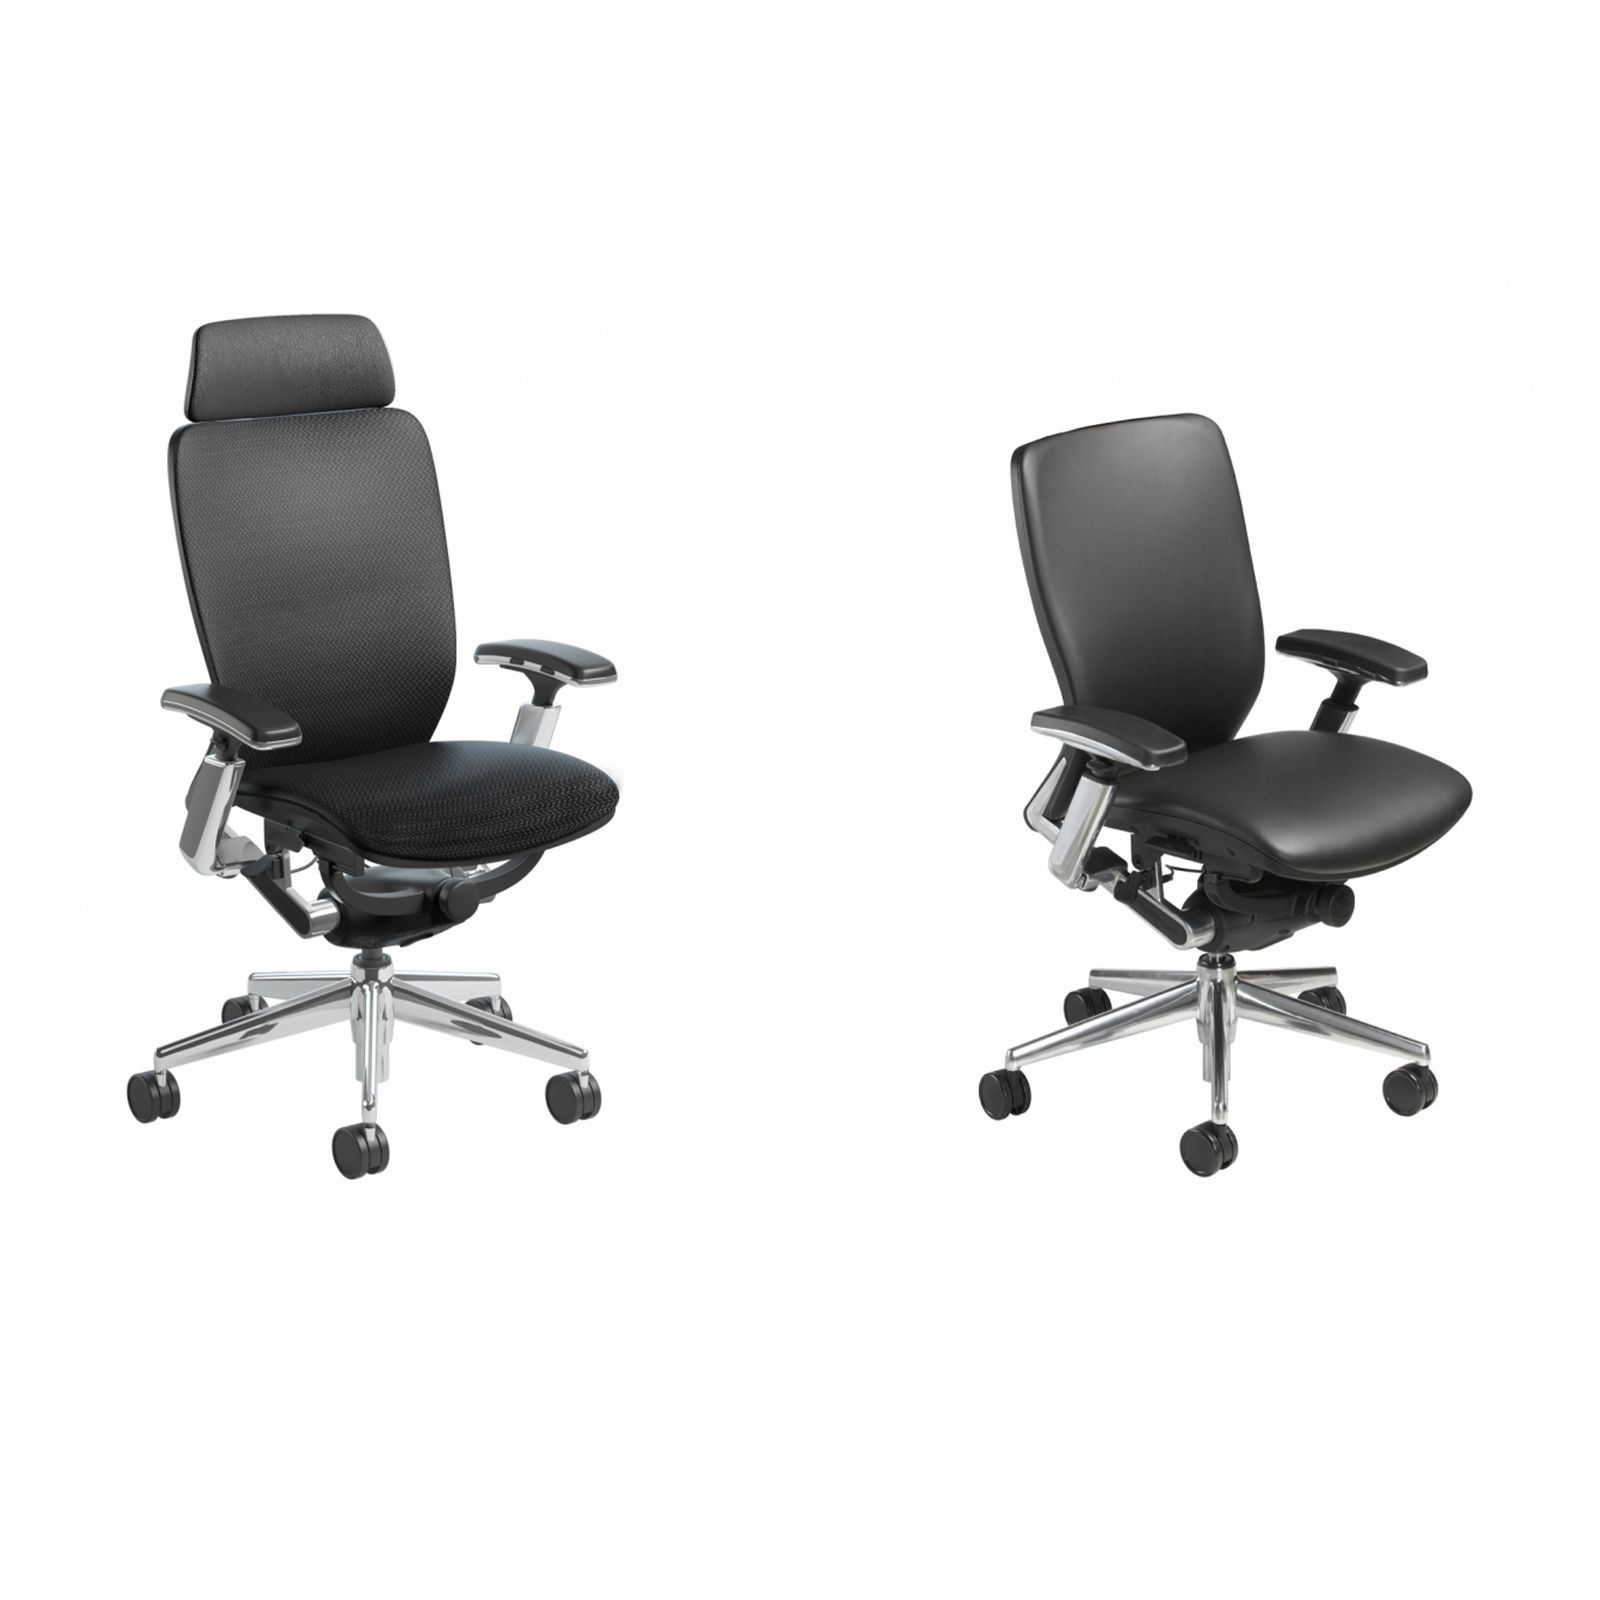 IC2 OFFICE CHAIR